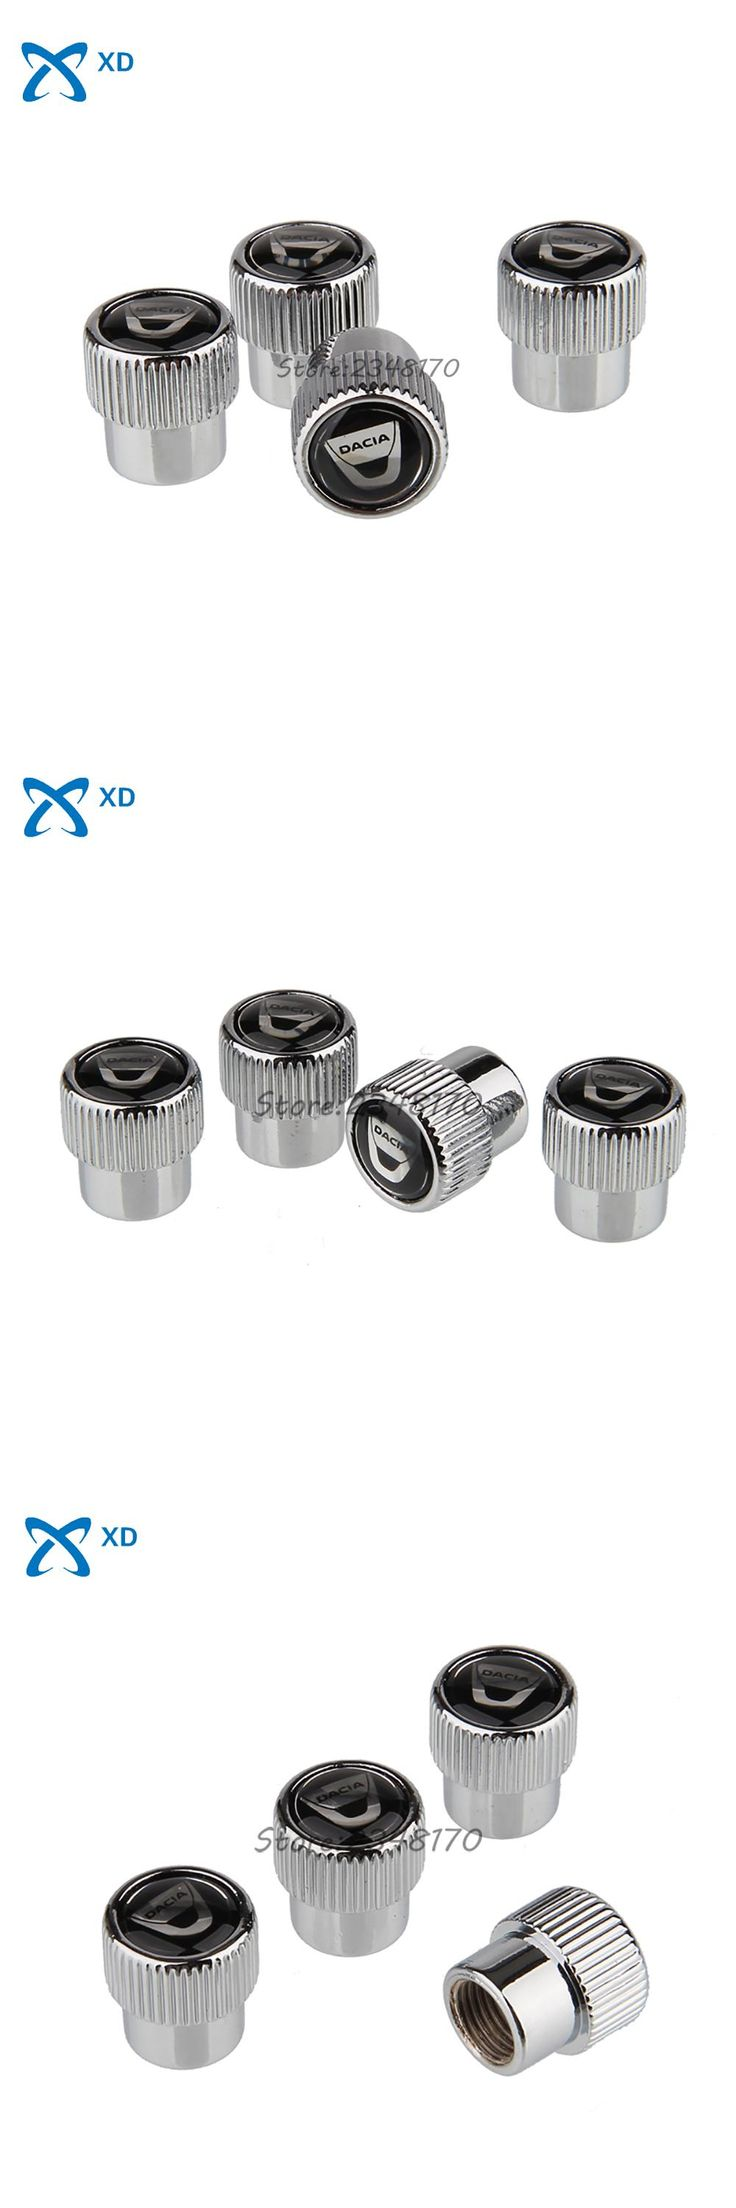 [Visit to Buy] 4Pcs/set New High Quality Airtight Cover Stainless Steel Wheel Tire Valve Stems Caps For Dacia Duster Logan Lodgy Sandero Dokker #Advertisement